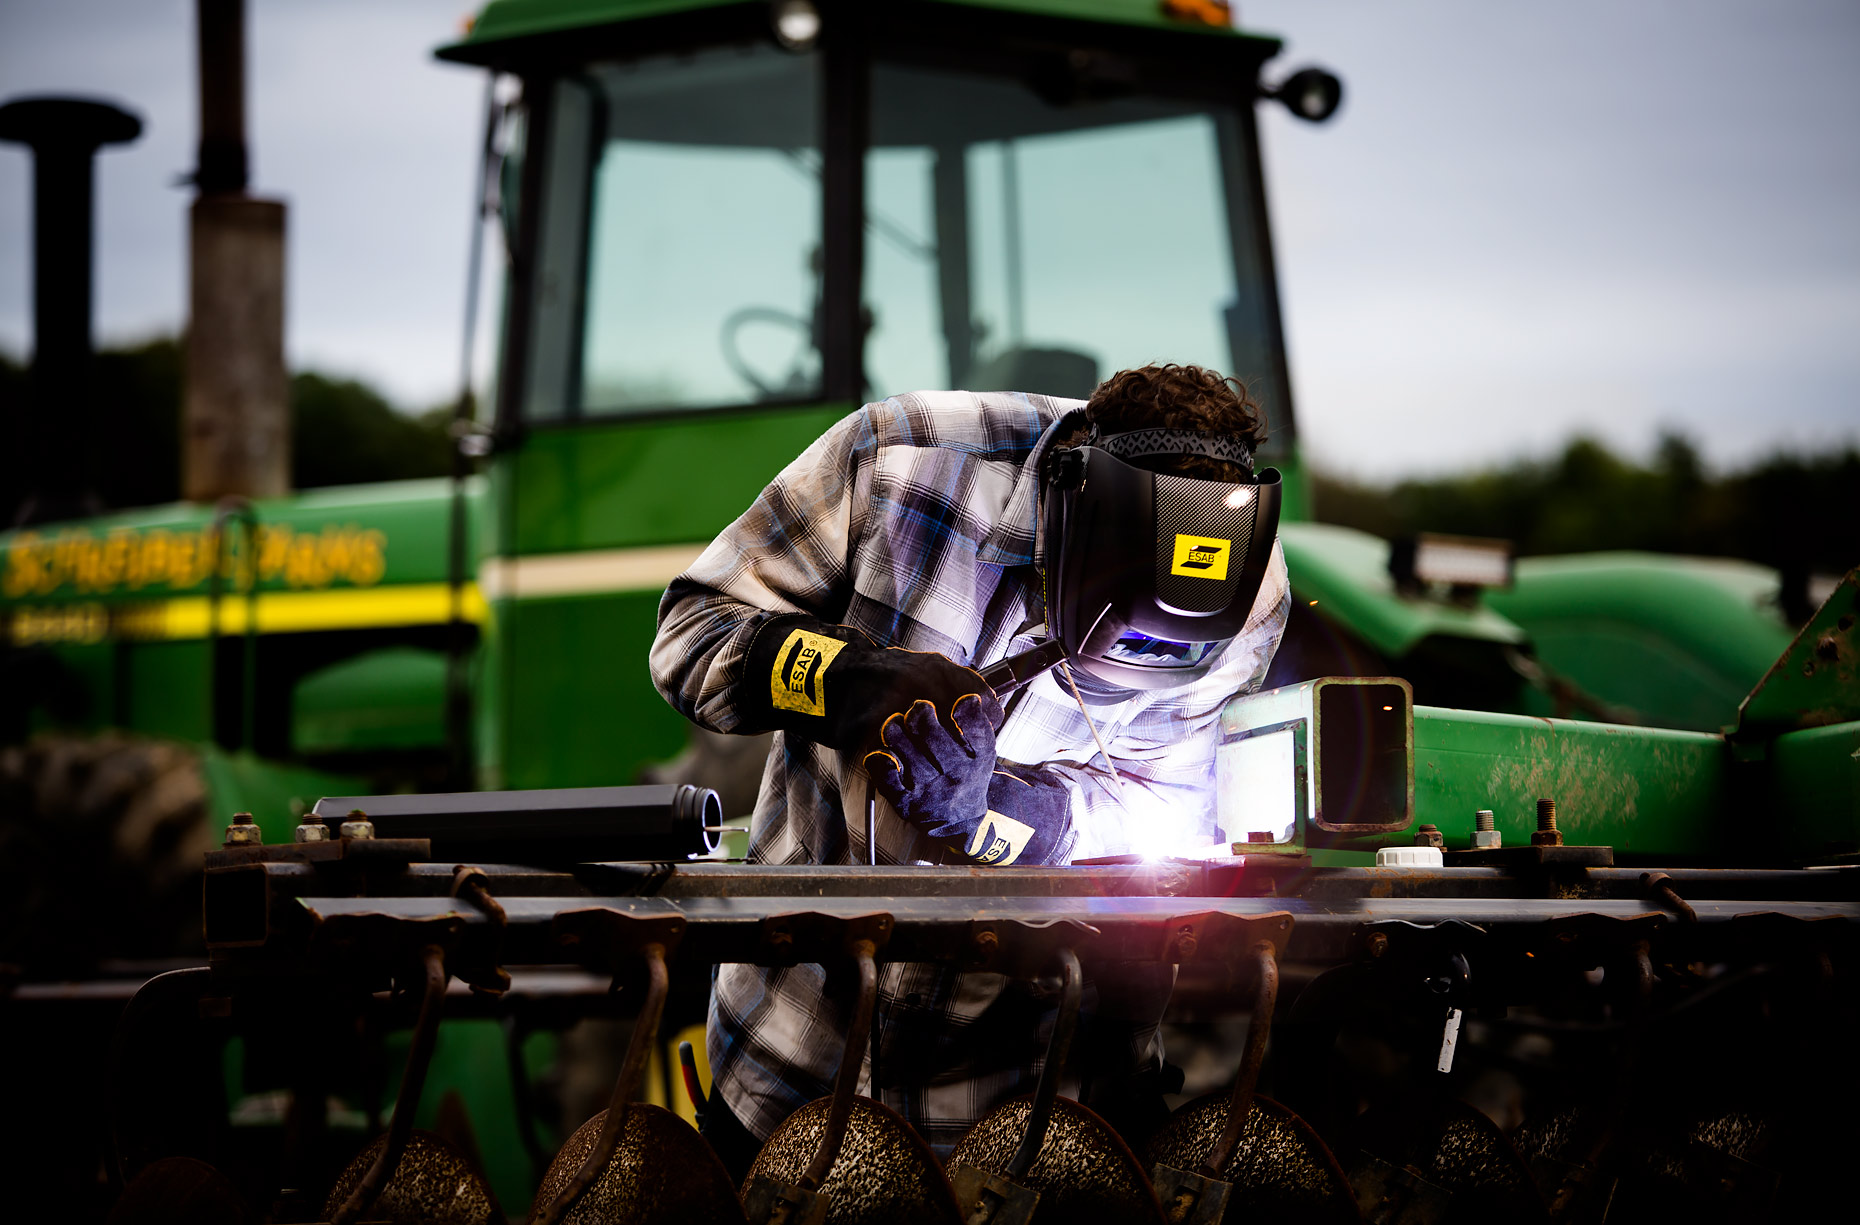 ESAB-Rebel-welder-next-to-John-Deer-tractor-in-field